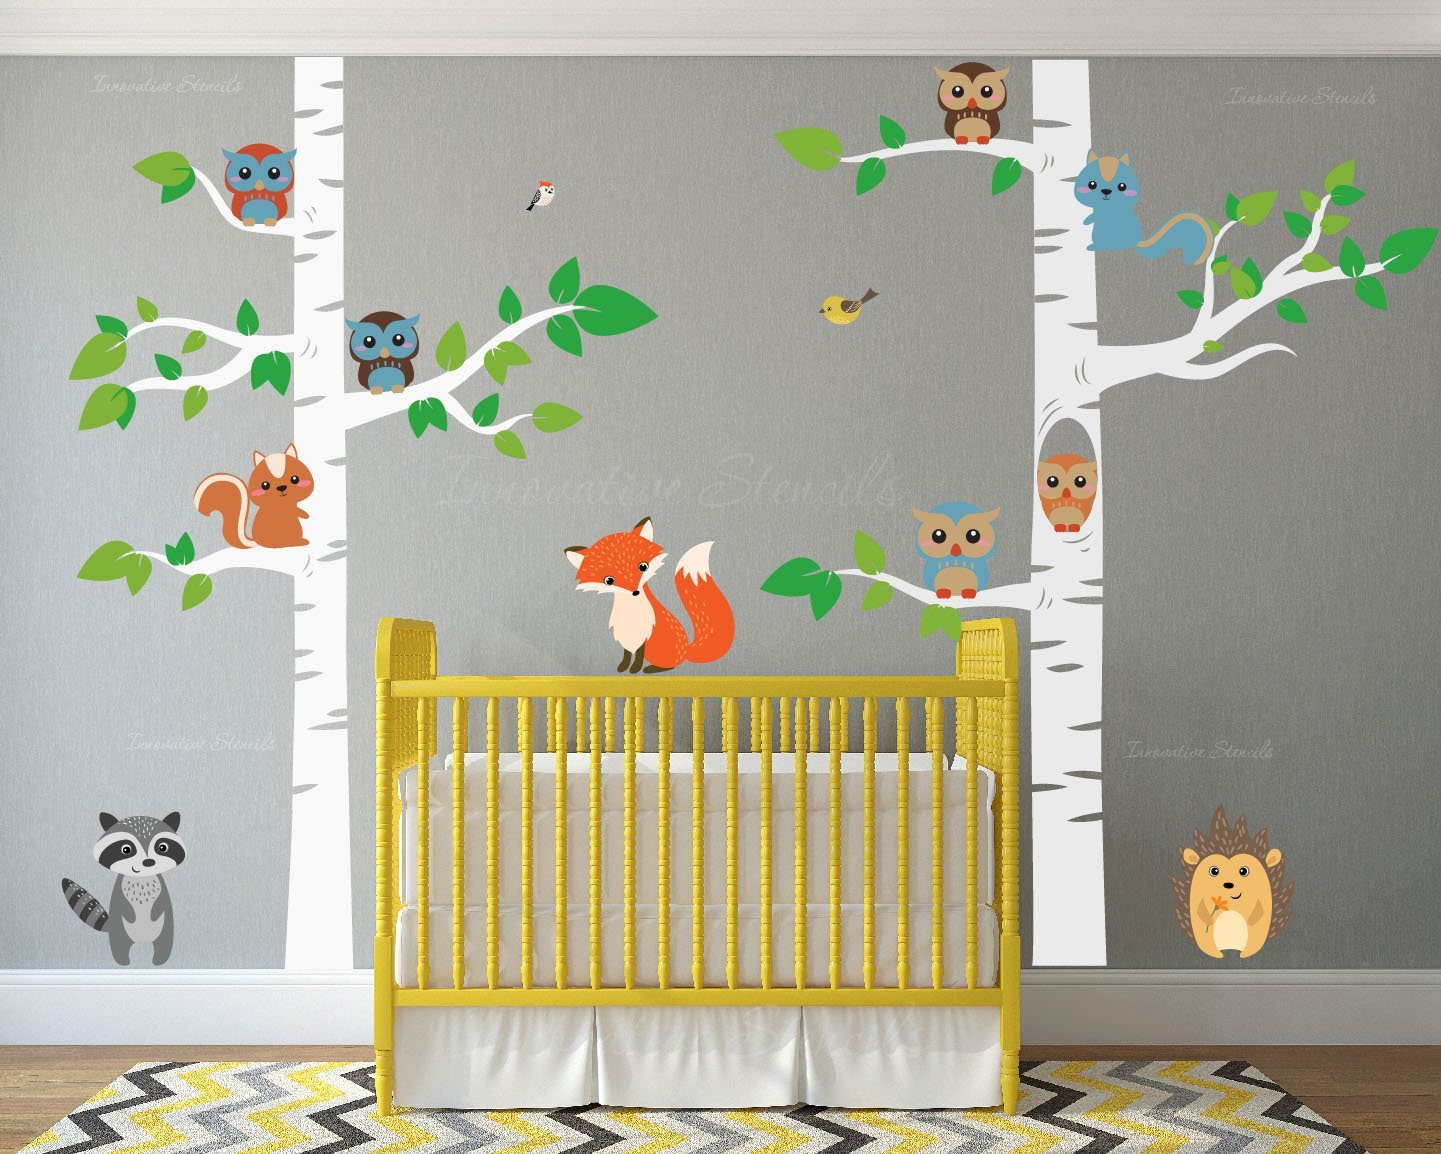 Birch Tree Wall Decal Forest with Owl Birds Squirrels Fox Porcupine Racoon Vinyl Sticker Woodland Children Decor Removable #1327 (84'' (7 ft) Tall, White Trees) by Innovative Stencils